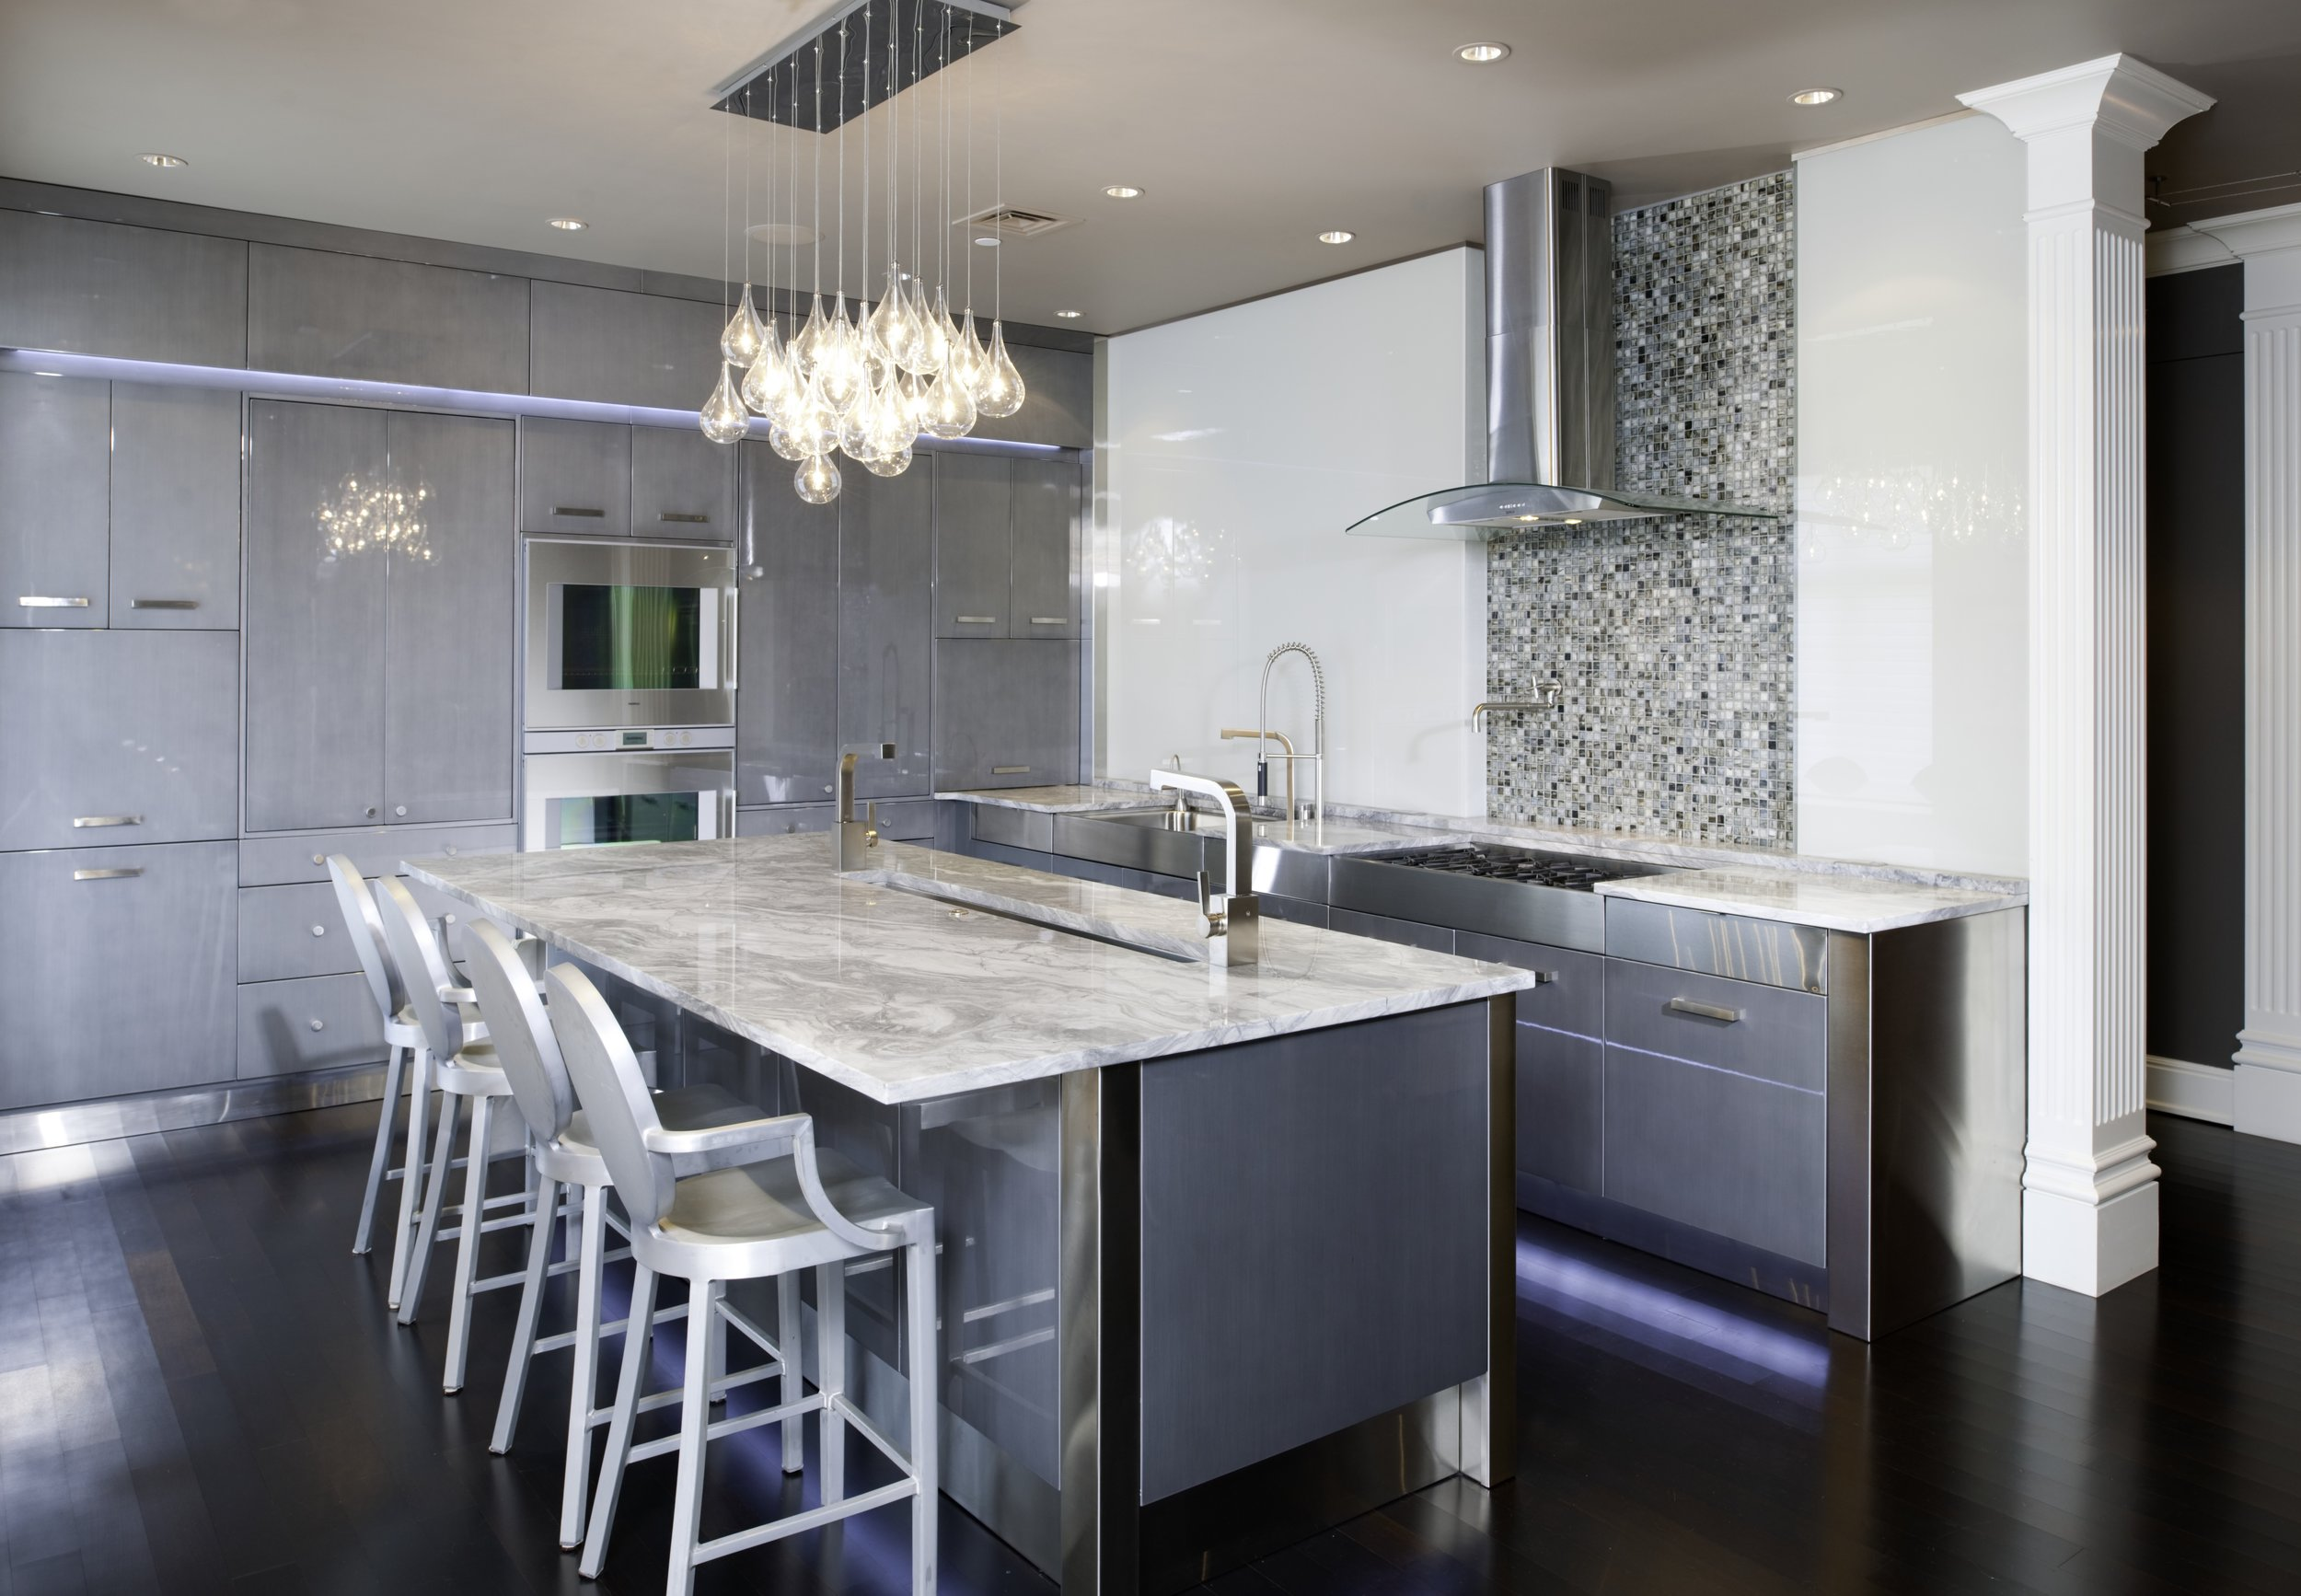 KBC_kitchen_bath_concepts_Kitchen_29.jpg